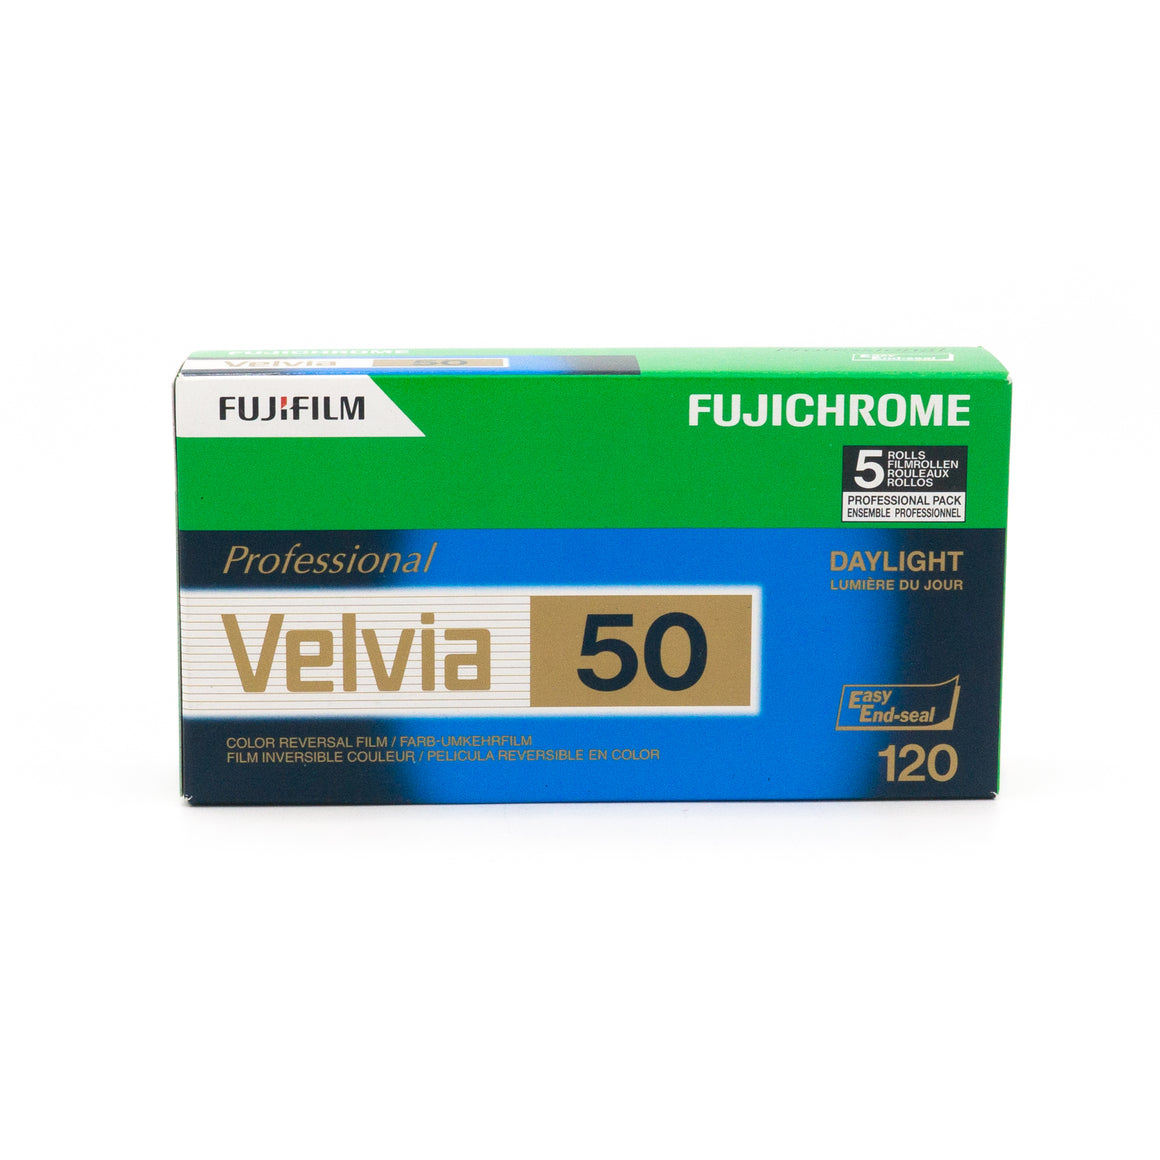 Fujifilm Velvia 50 Colour Slide Film (120)